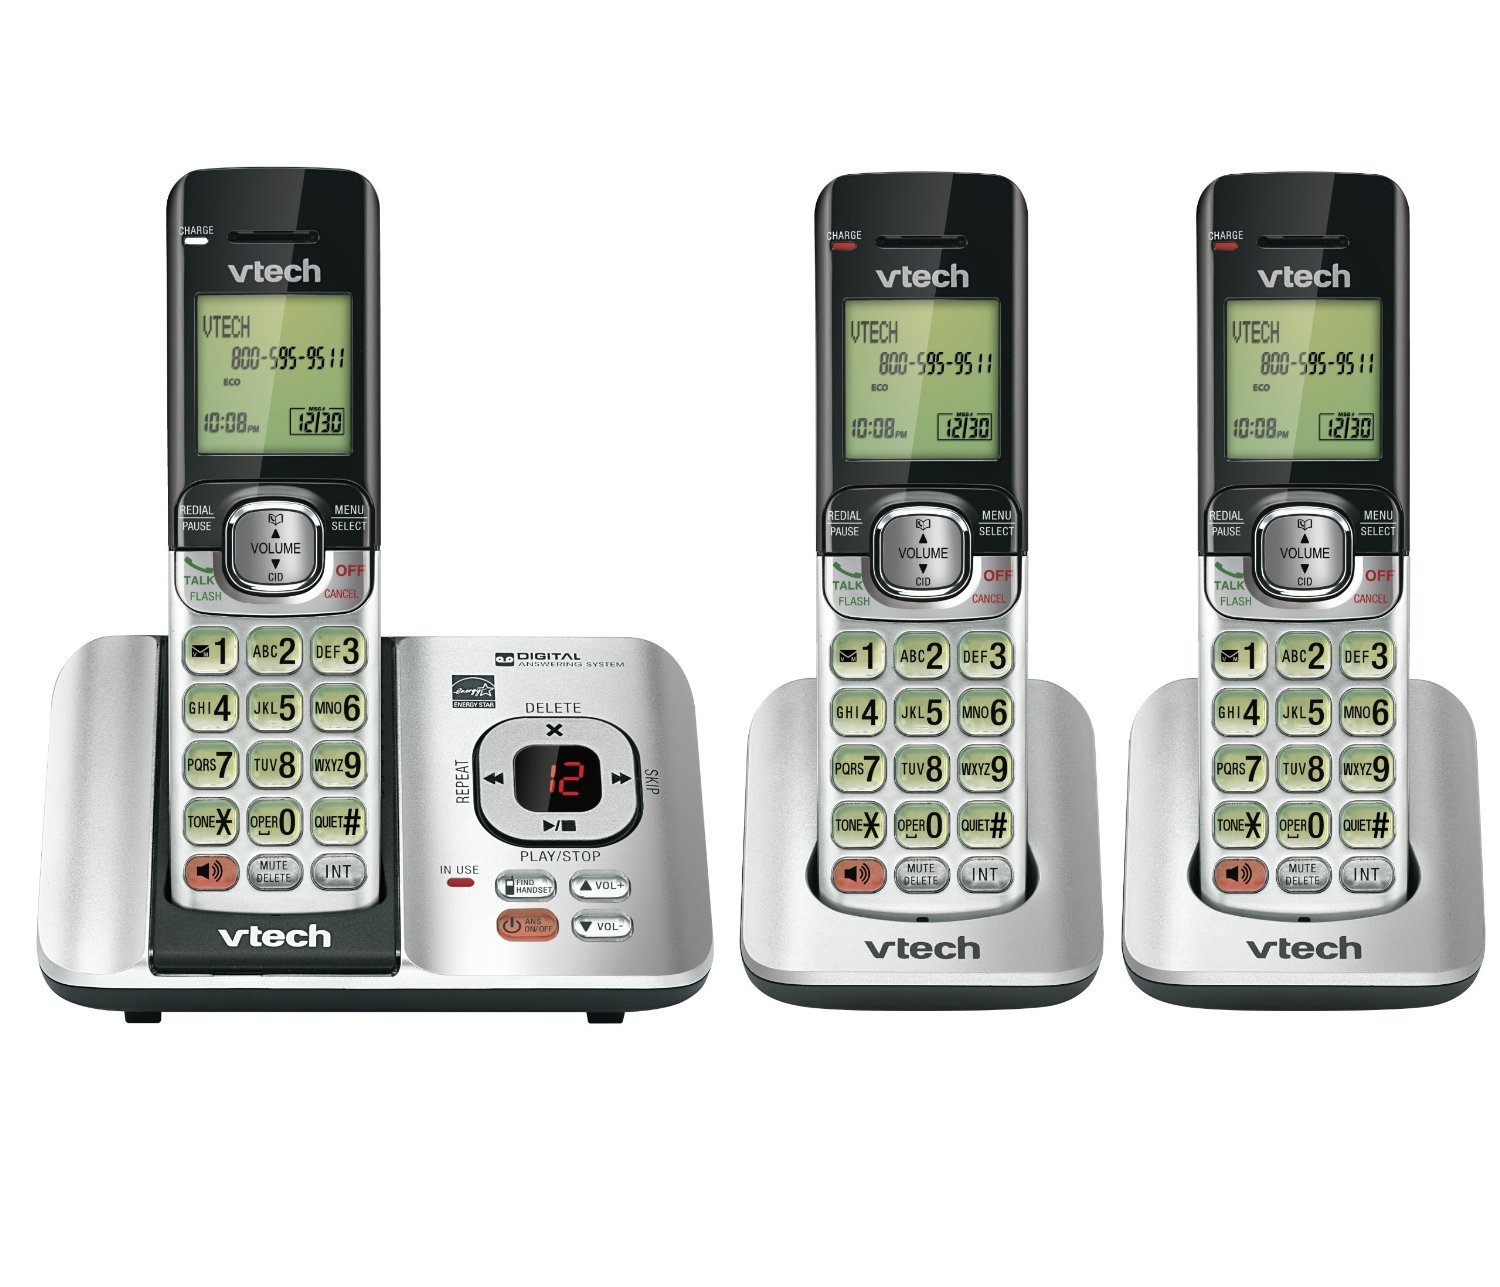 vtech digital answering system manual with bluetooth